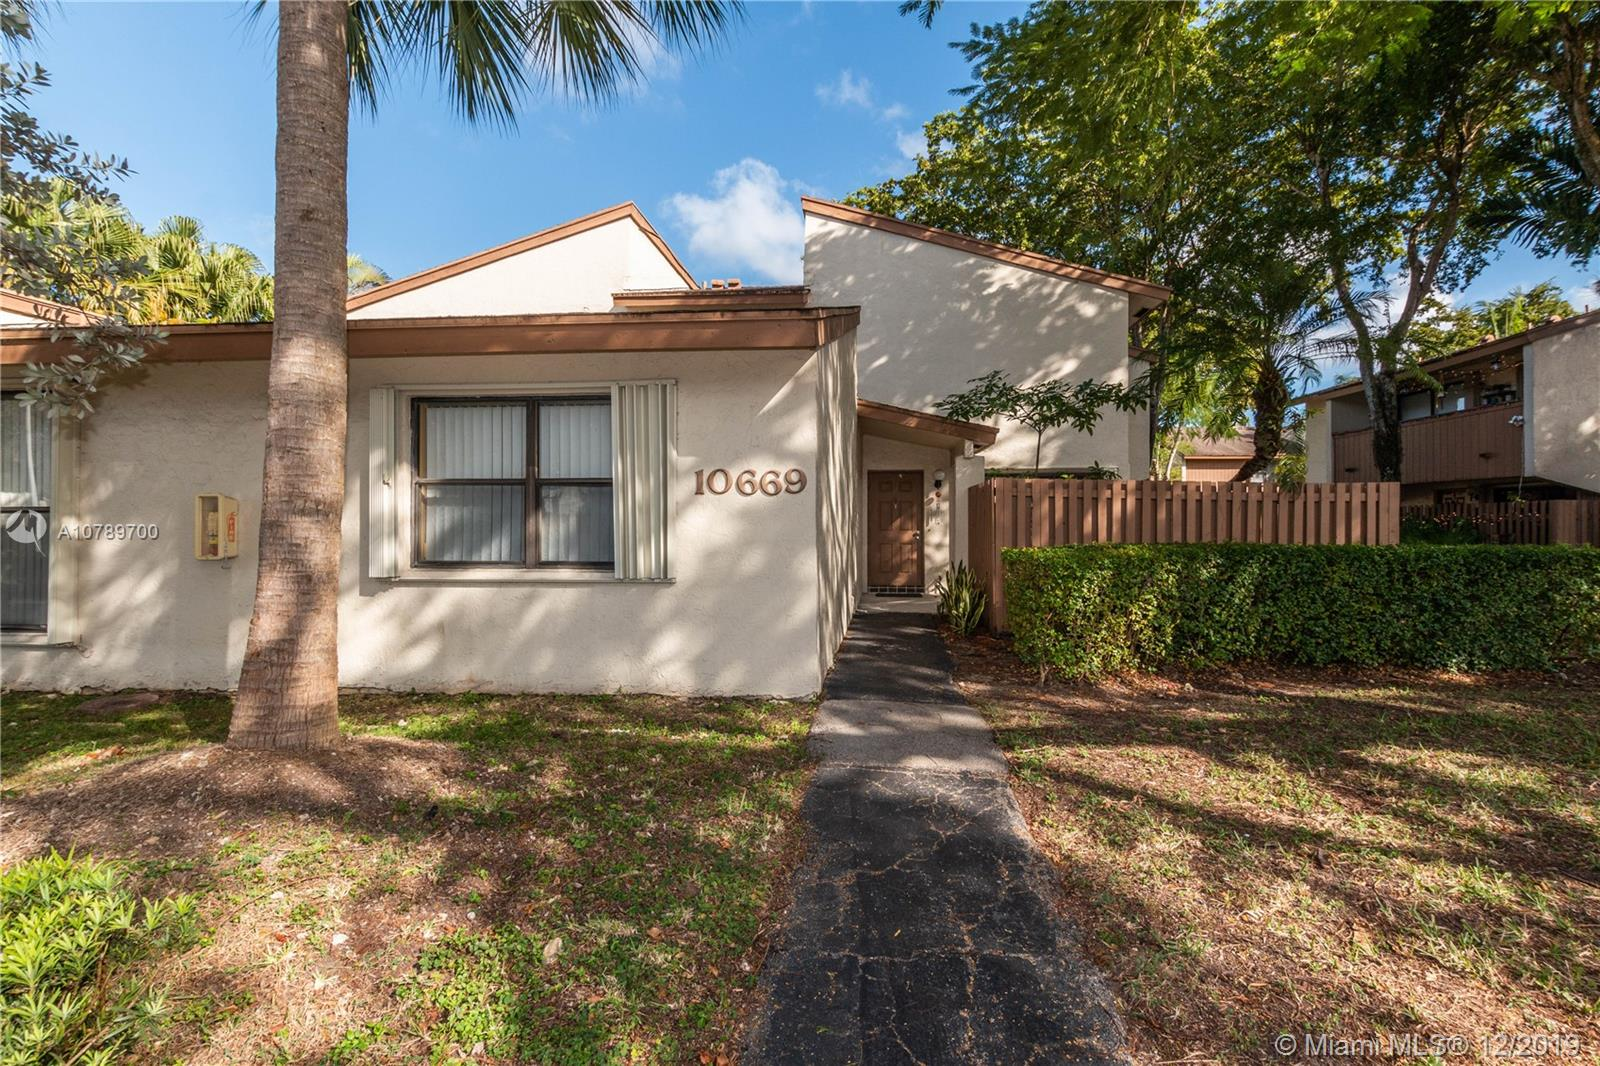 10669 SW 113th Pl #84Y For Sale A10789700, FL